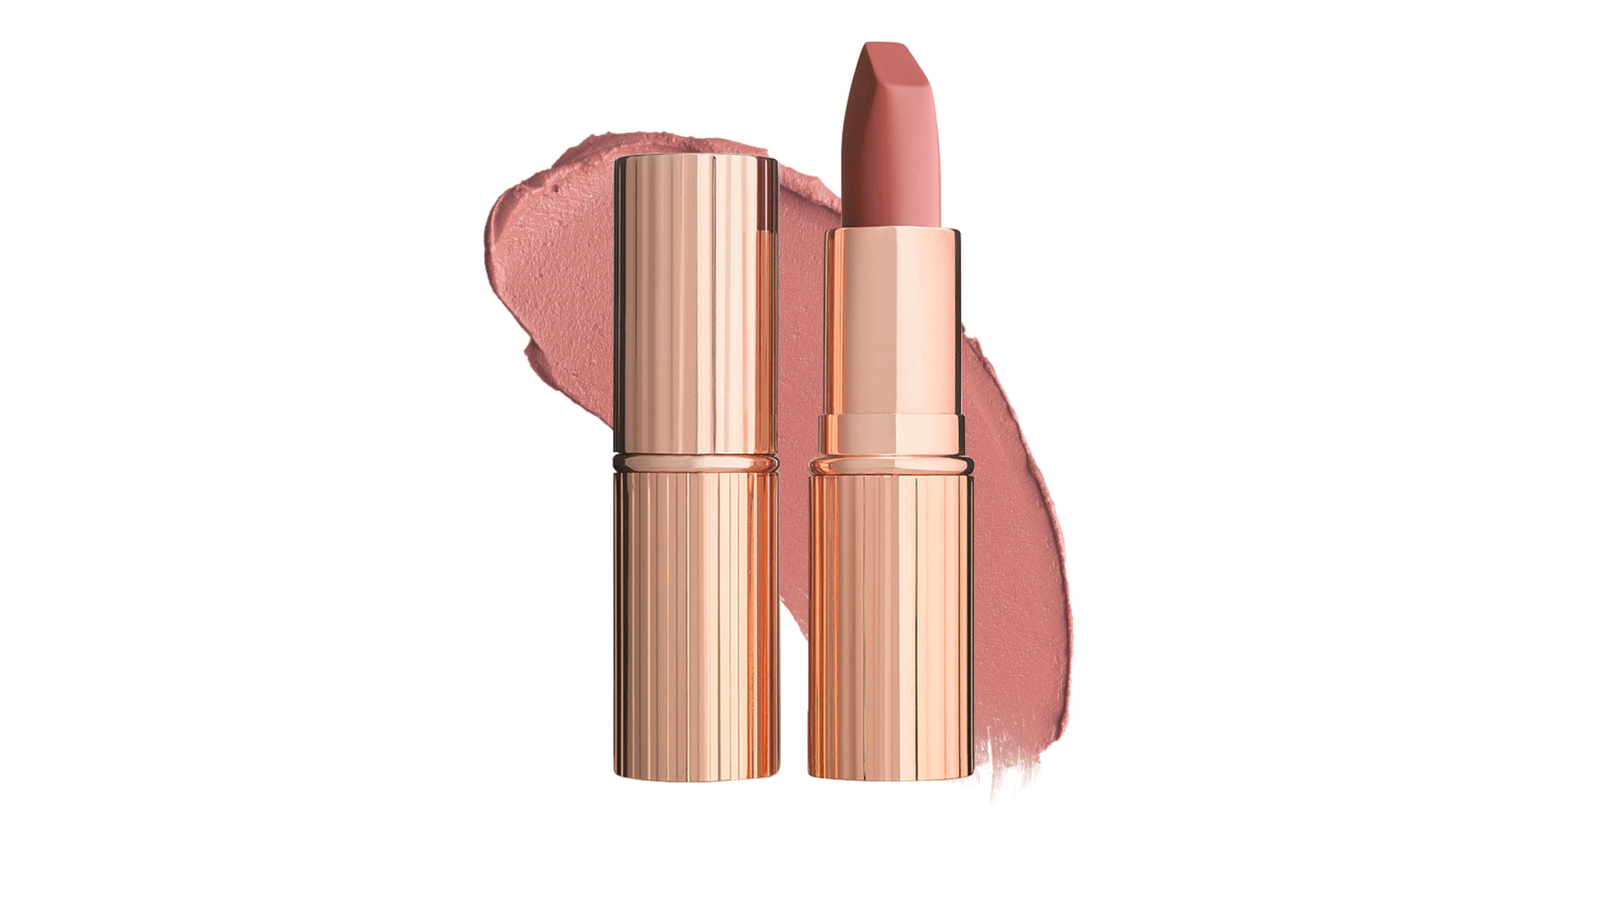 Best Lipstick Power Up Your Pout With The Best Lipsticks